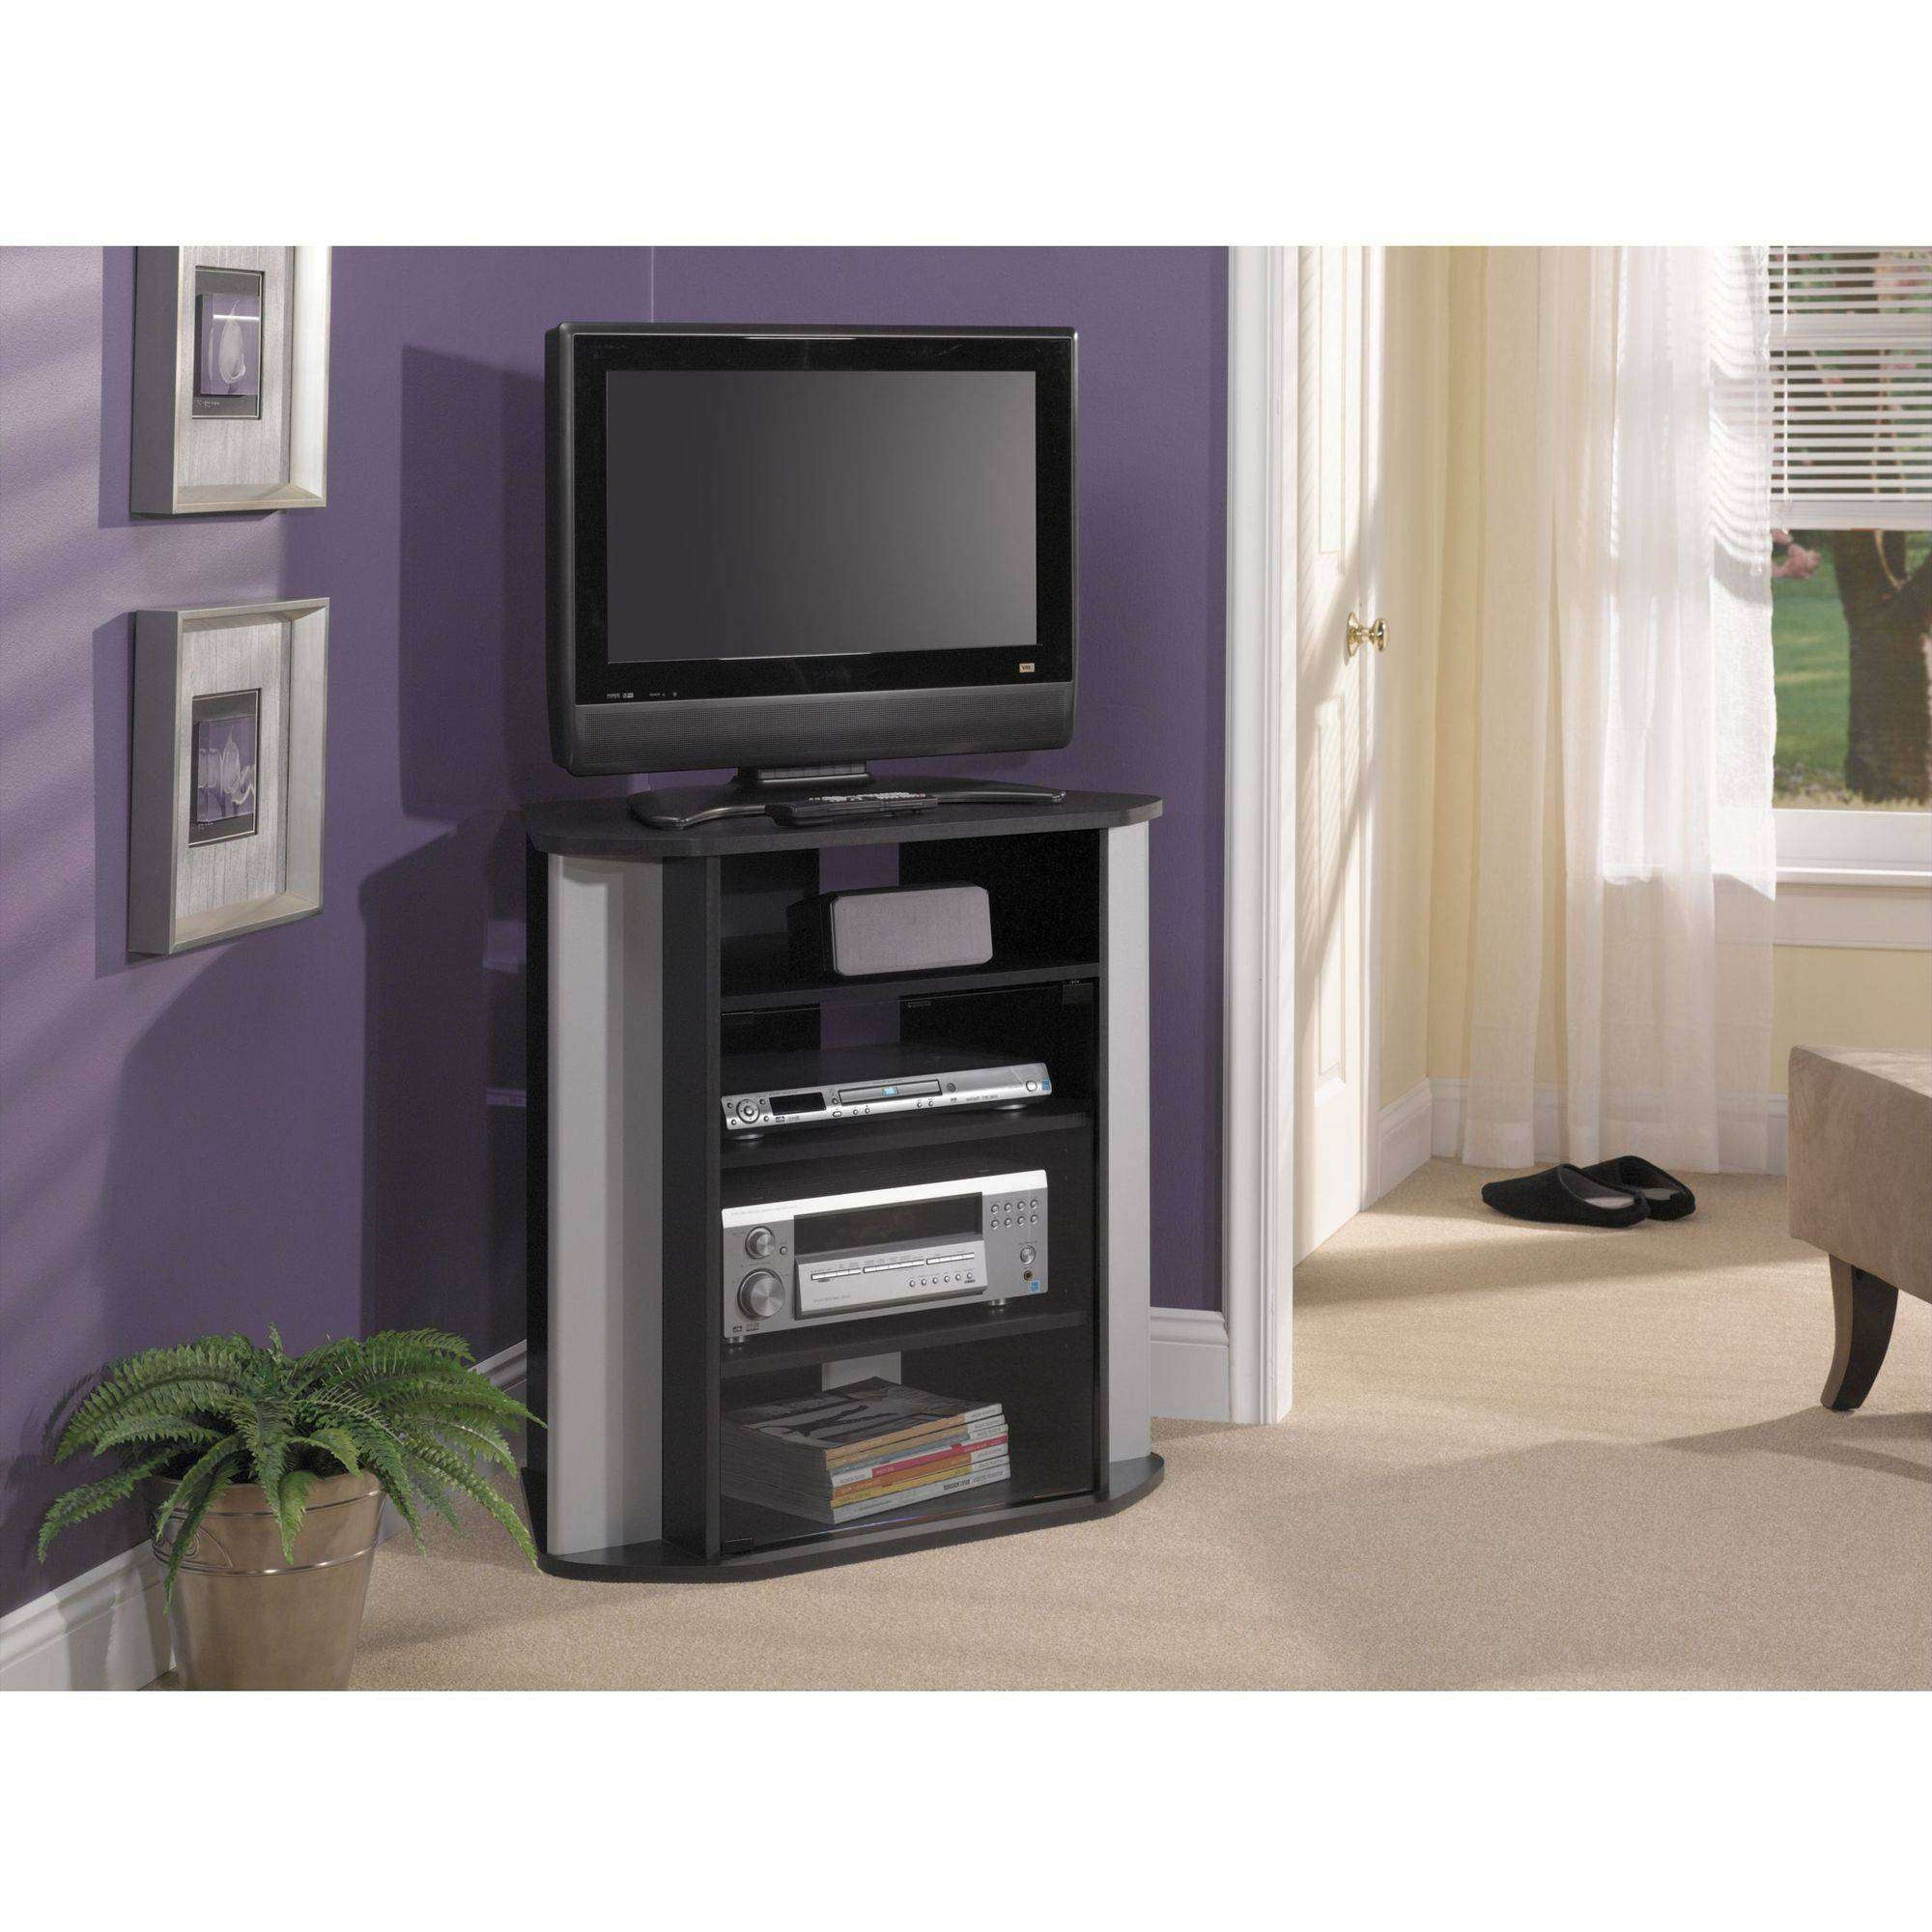 Bush Visions Black Tall Corner Tv Stand, For Tvs Up To 37 In Tall Tv Cabinets Corner Unit (View 3 of 20)